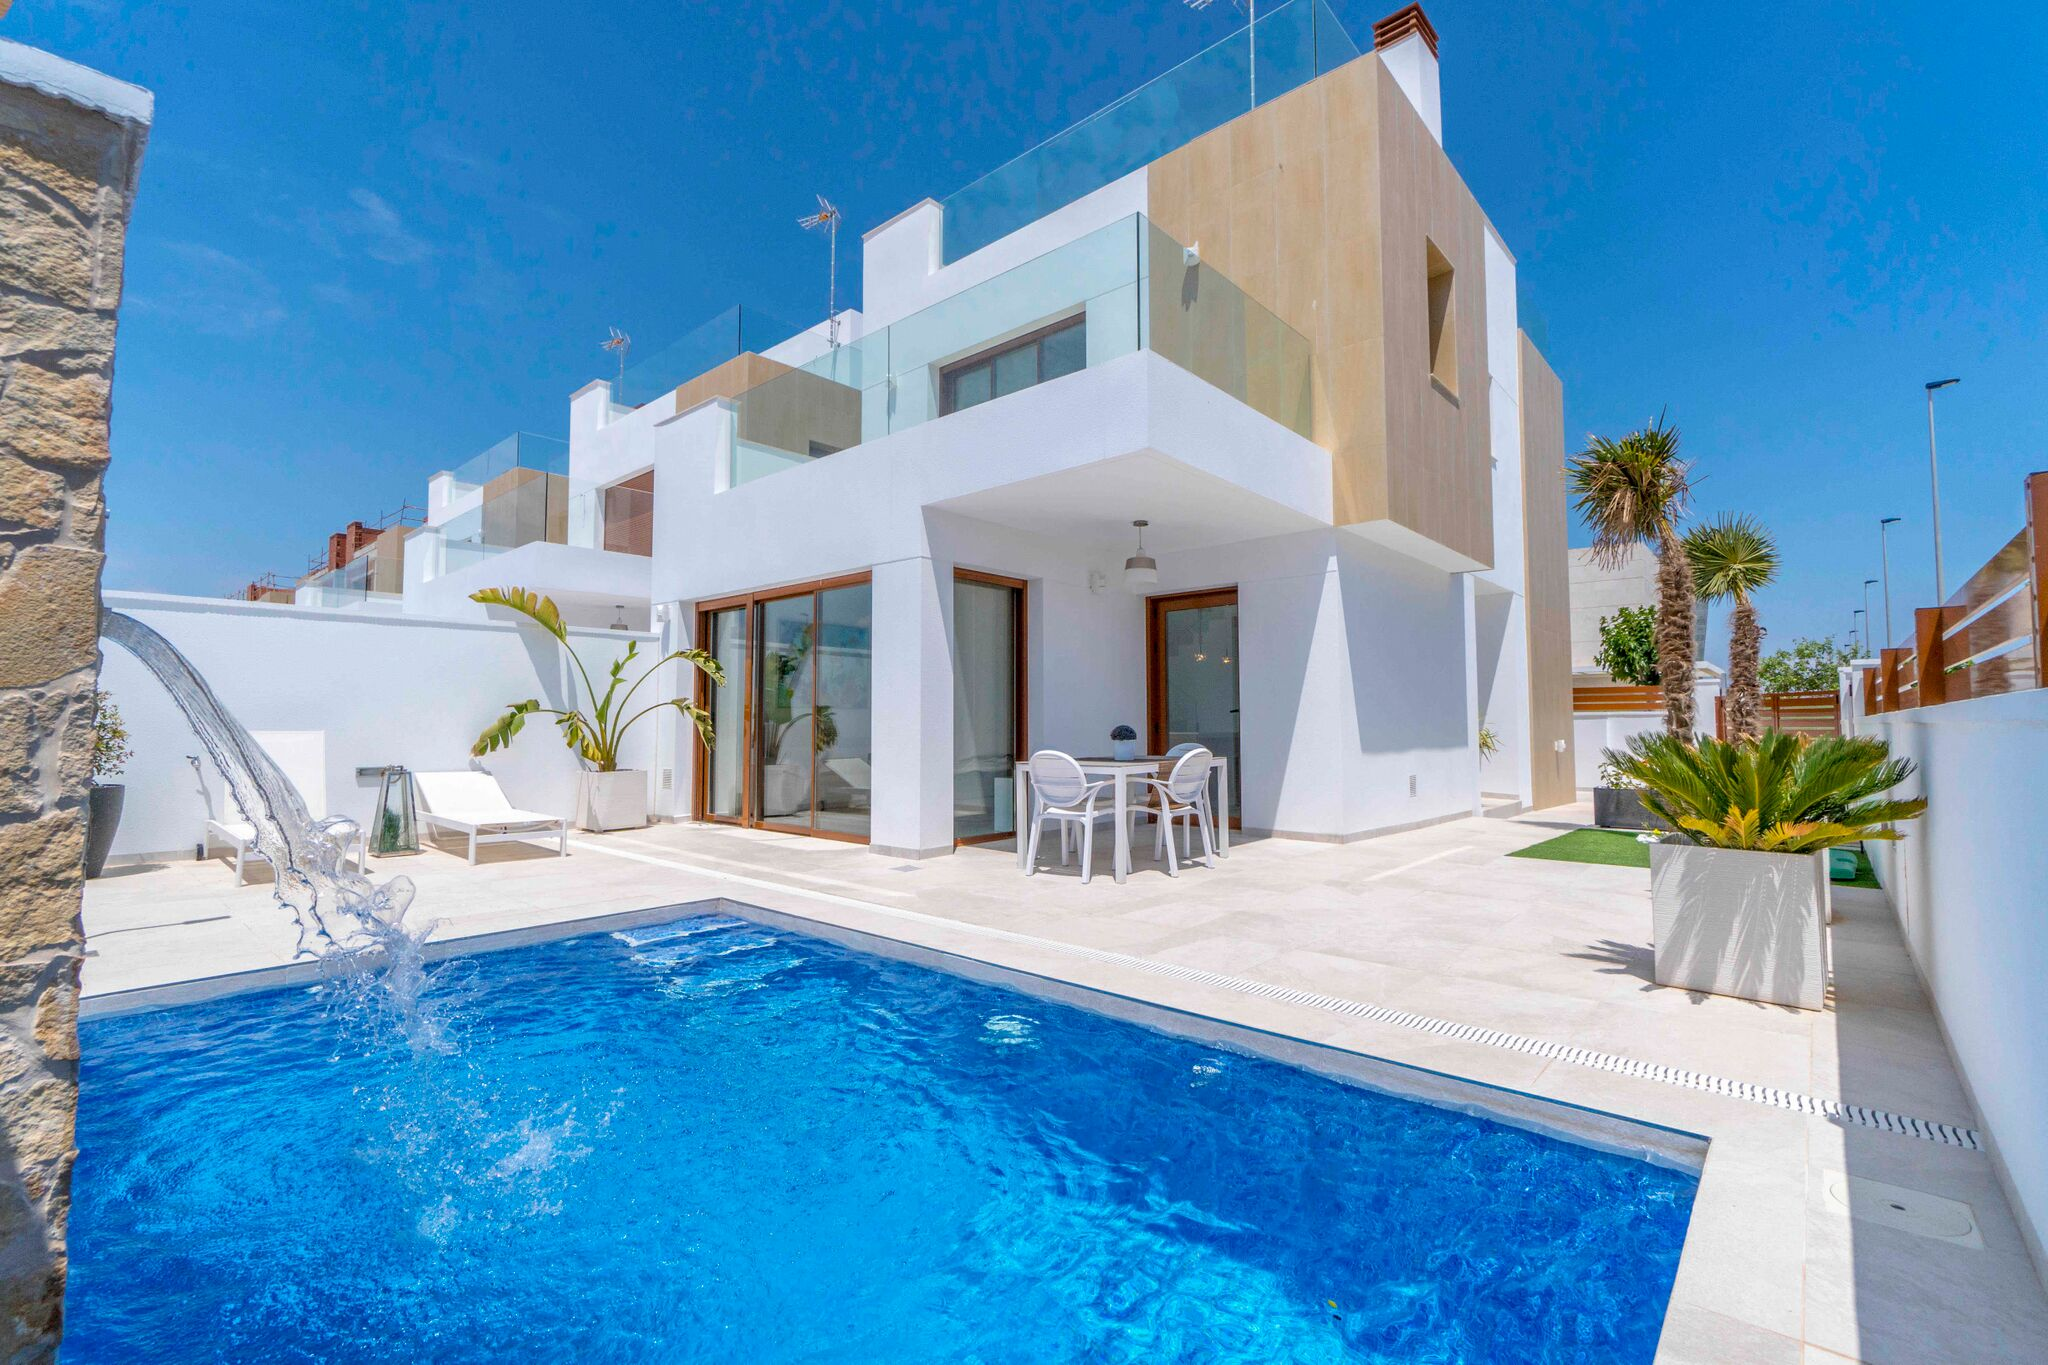 Luxurious detached villa, 300 meters from the sea